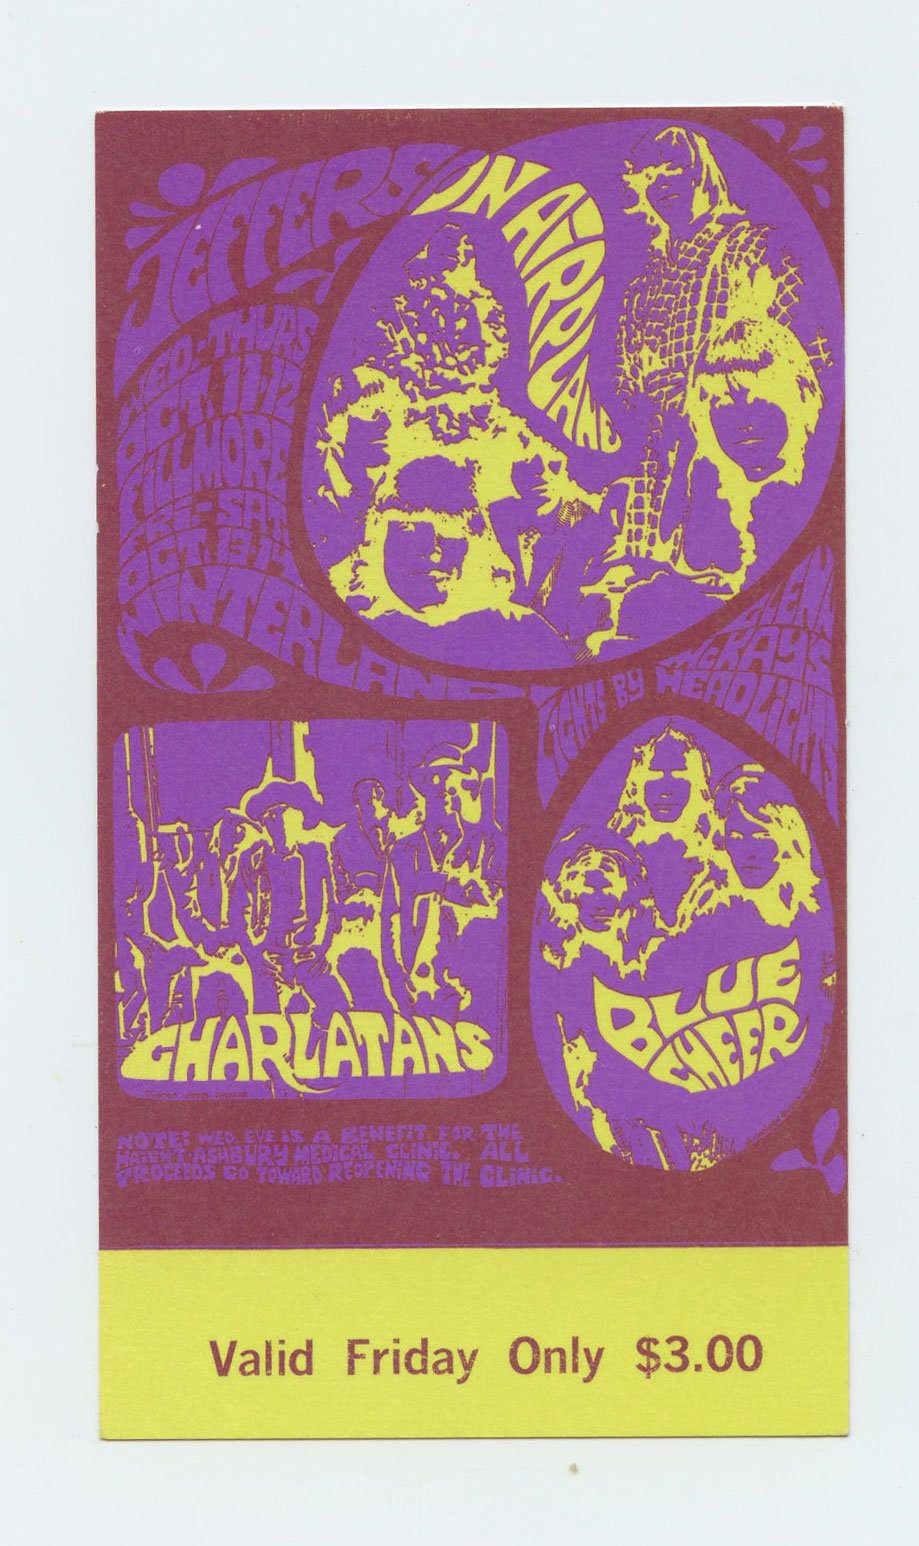 BG 88 Ticket Jefferson Airplane Charlatans Blue Cheer 1967 Oct 11